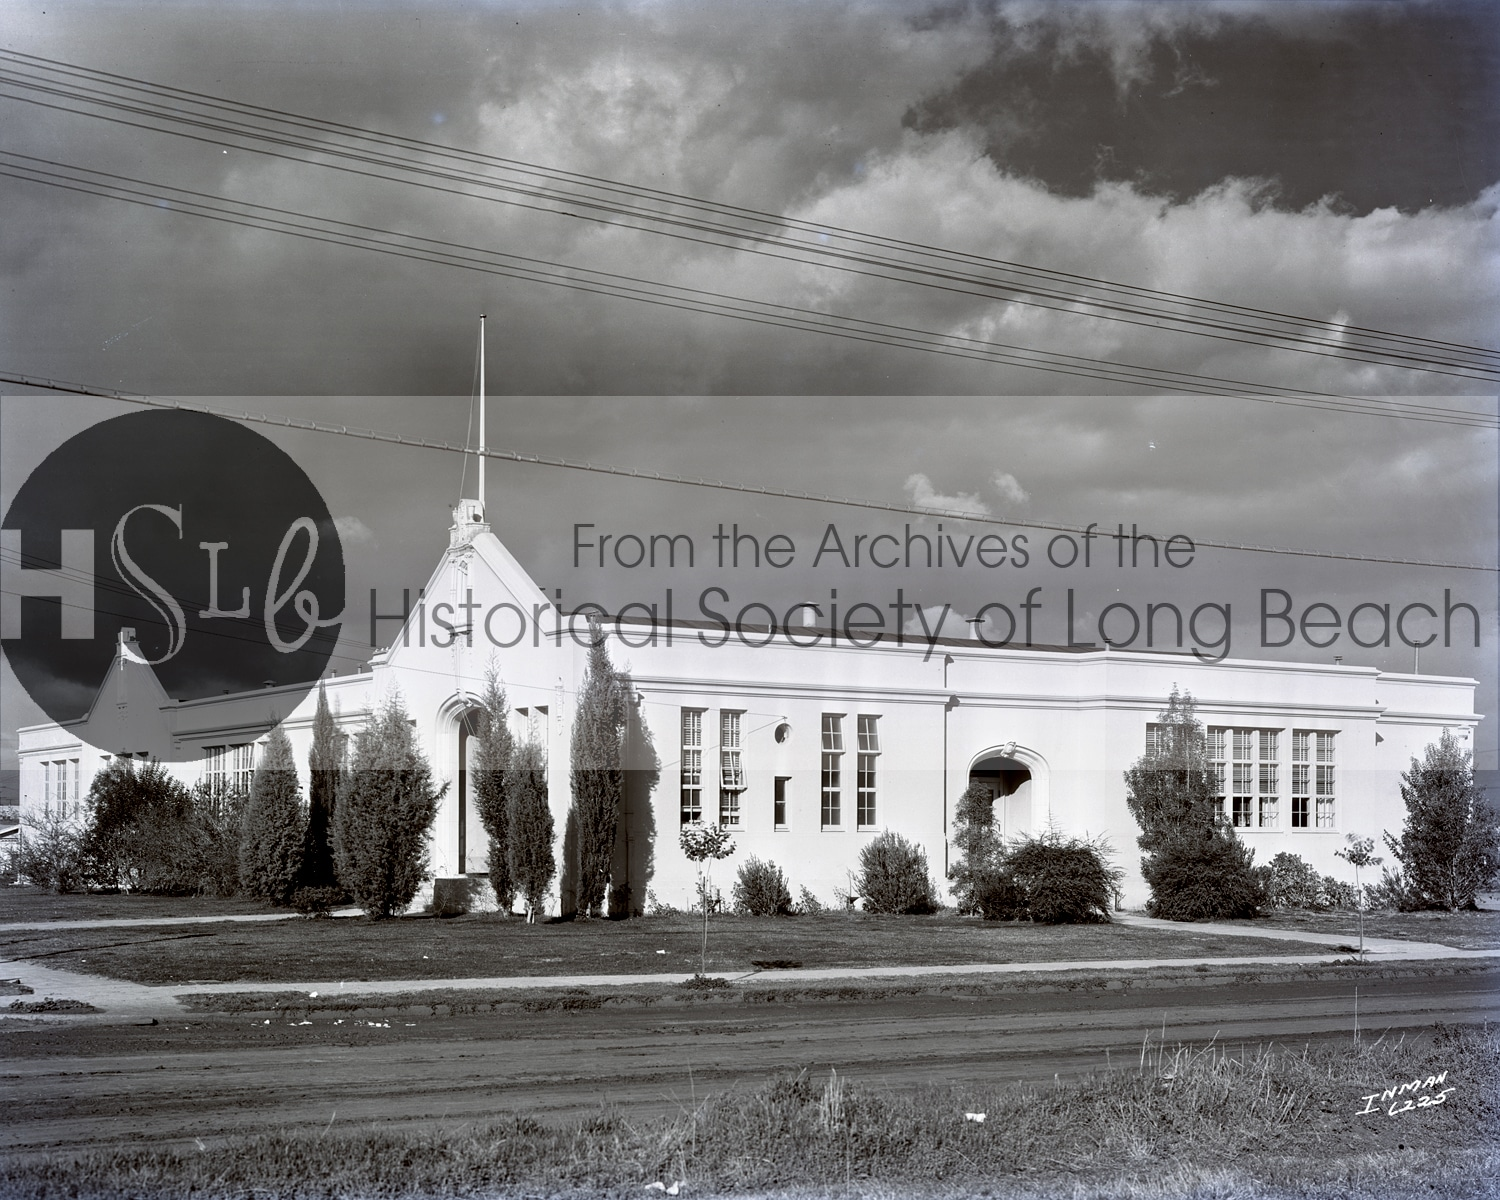 Long beach historical church building photograph